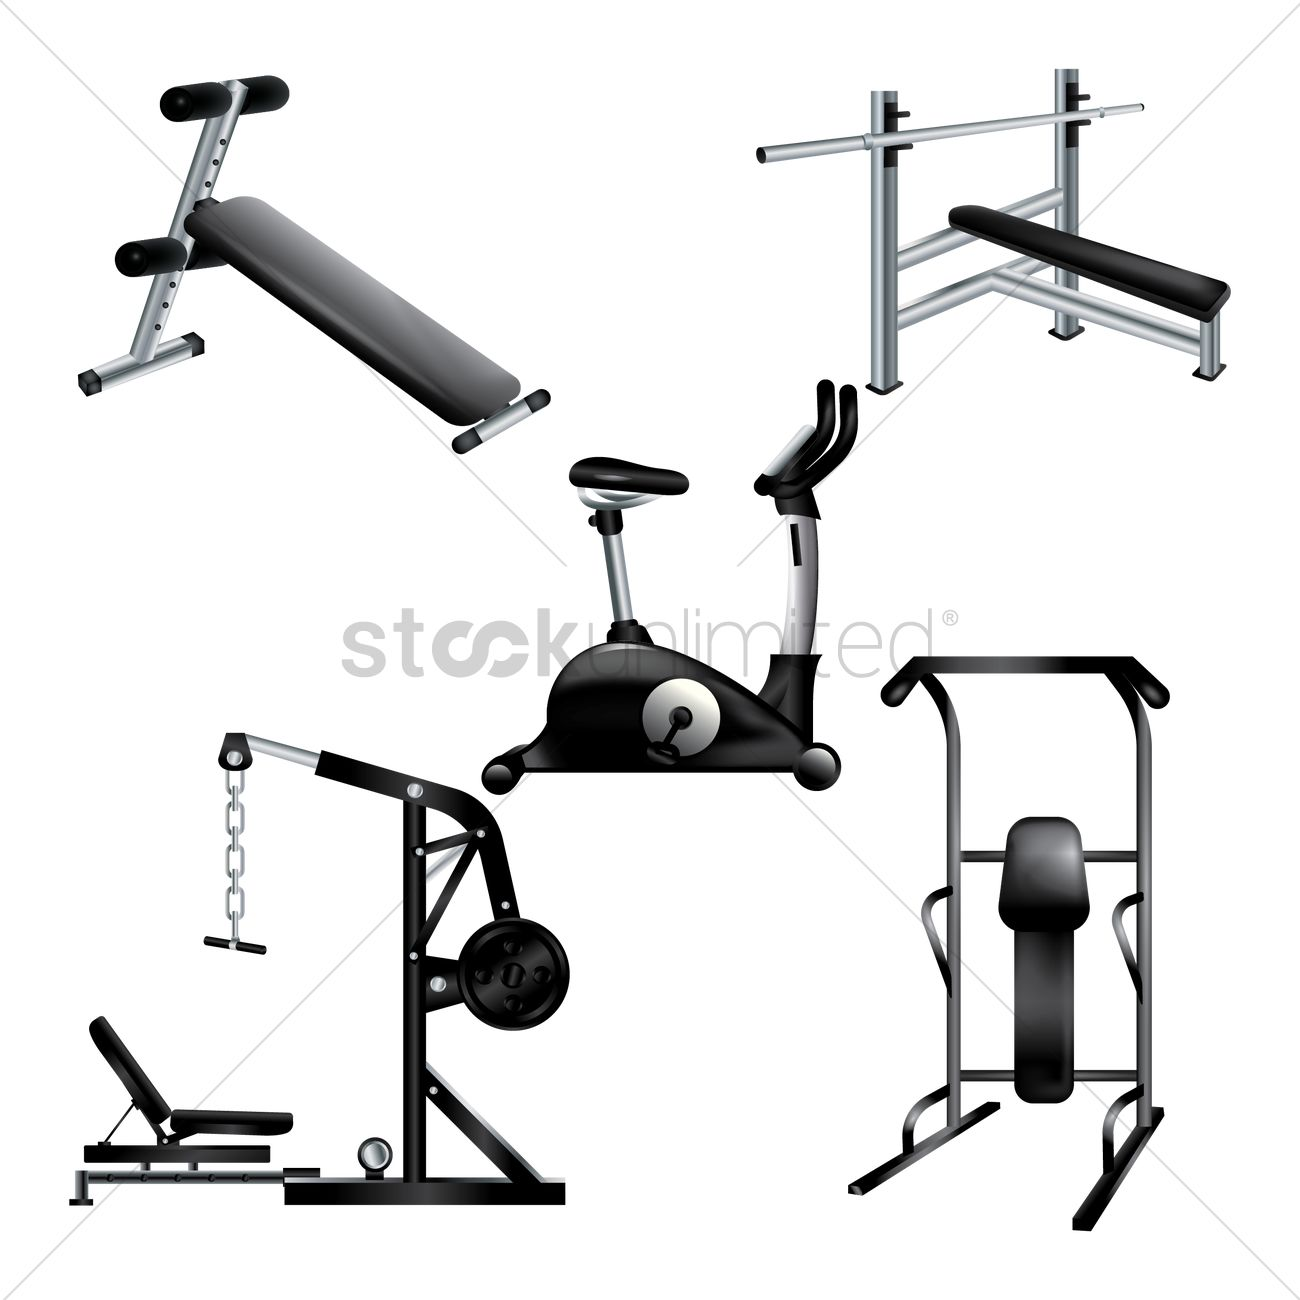 A collection of gym equipments Vector Image - 1869791   StockUnlimited